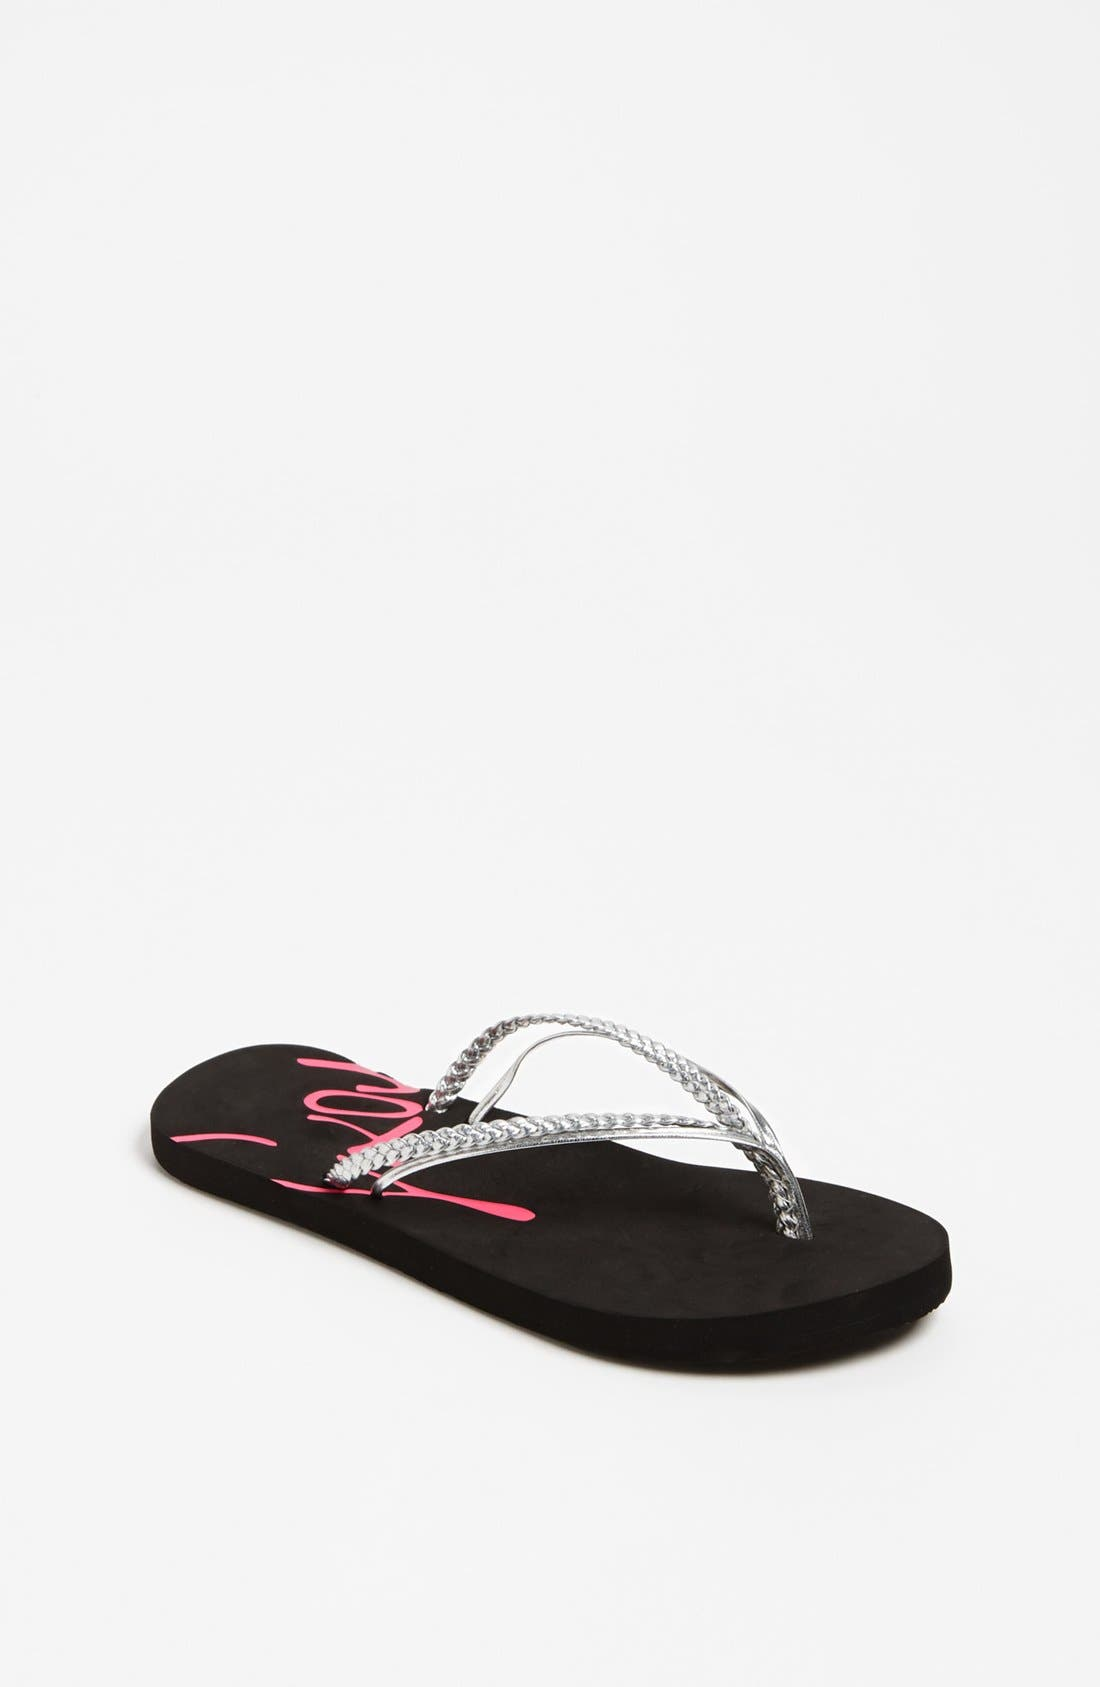 Alternate Image 1 Selected - Roxy 'RG Rio' Flip Flop (Toddler, Little Kids & Big Kid)